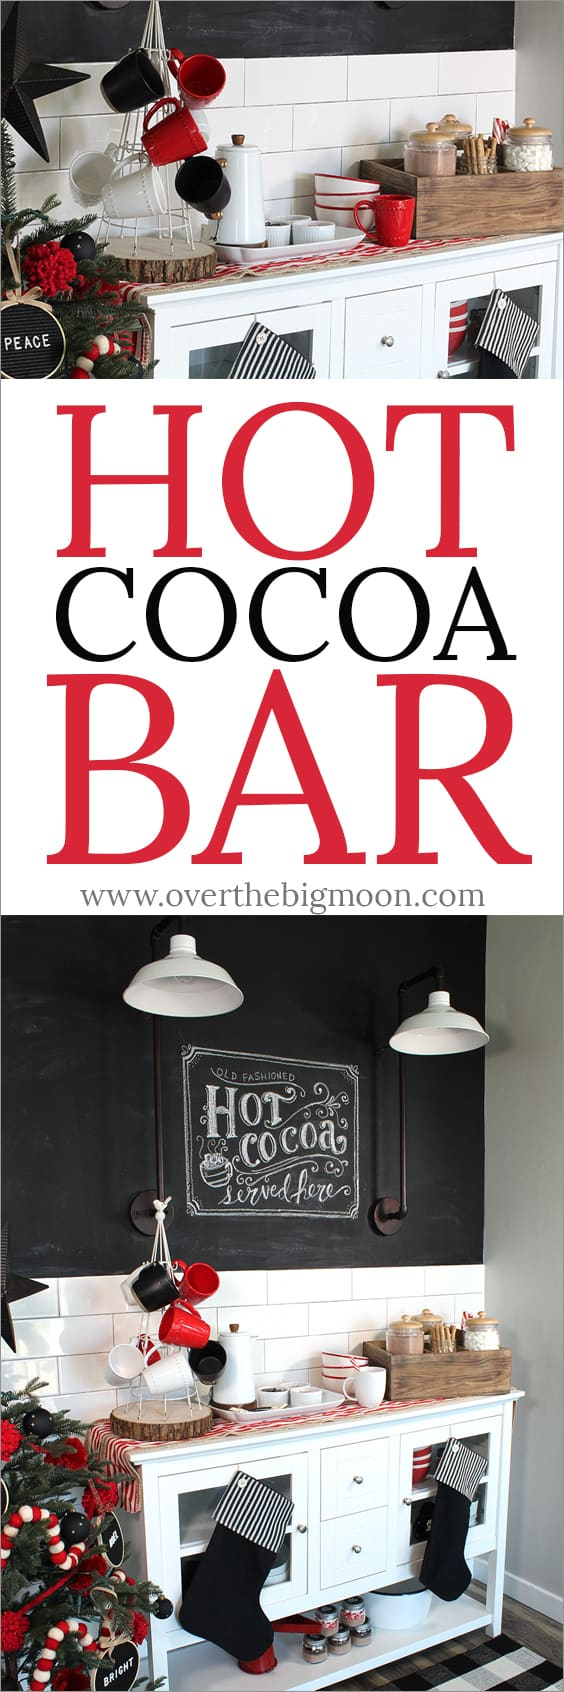 This Hot Cocoa Bar is perfect for a cold winter day! From www.overthebigmoon.com!